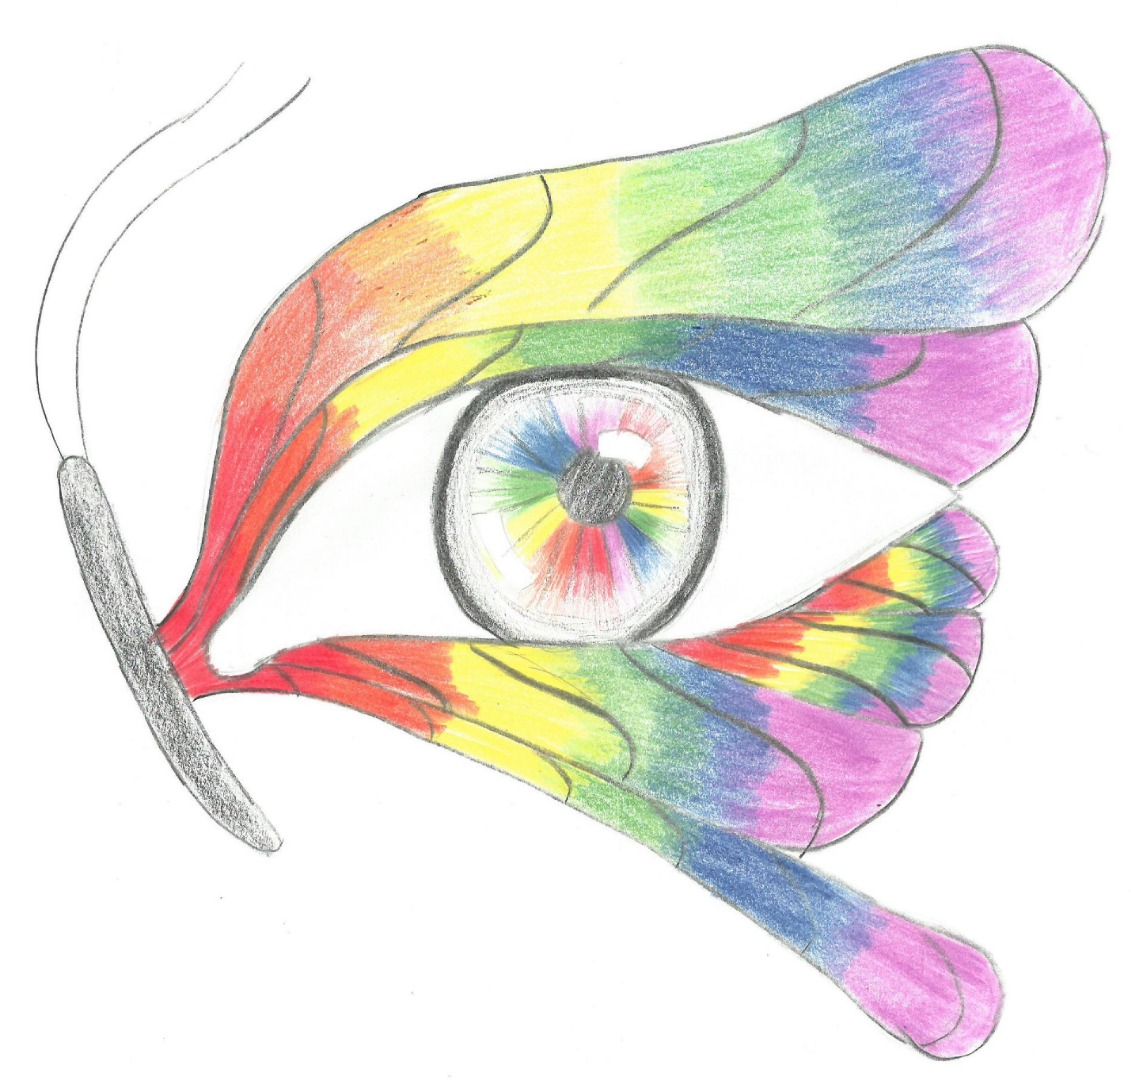 butterfly-eye artwork